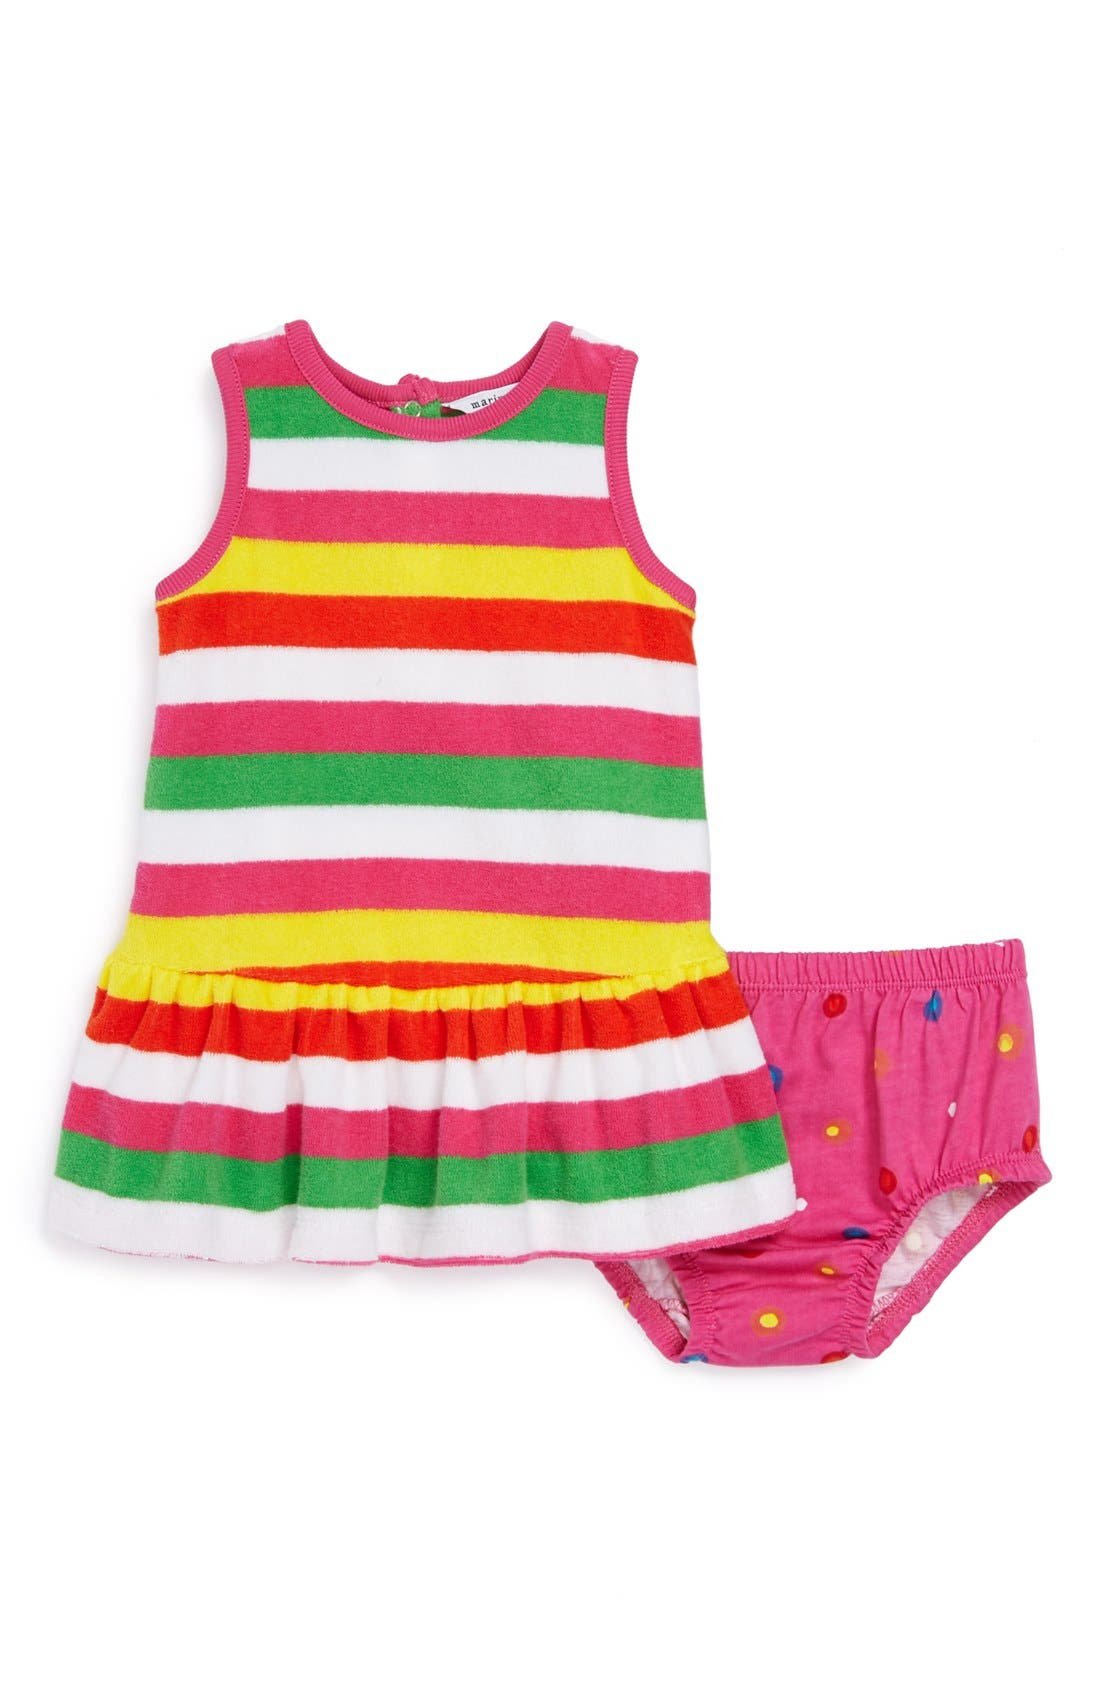 Alternate Image 1 Selected - Marimekko Terry Cloth Dress & Bloomers (Baby Girls)